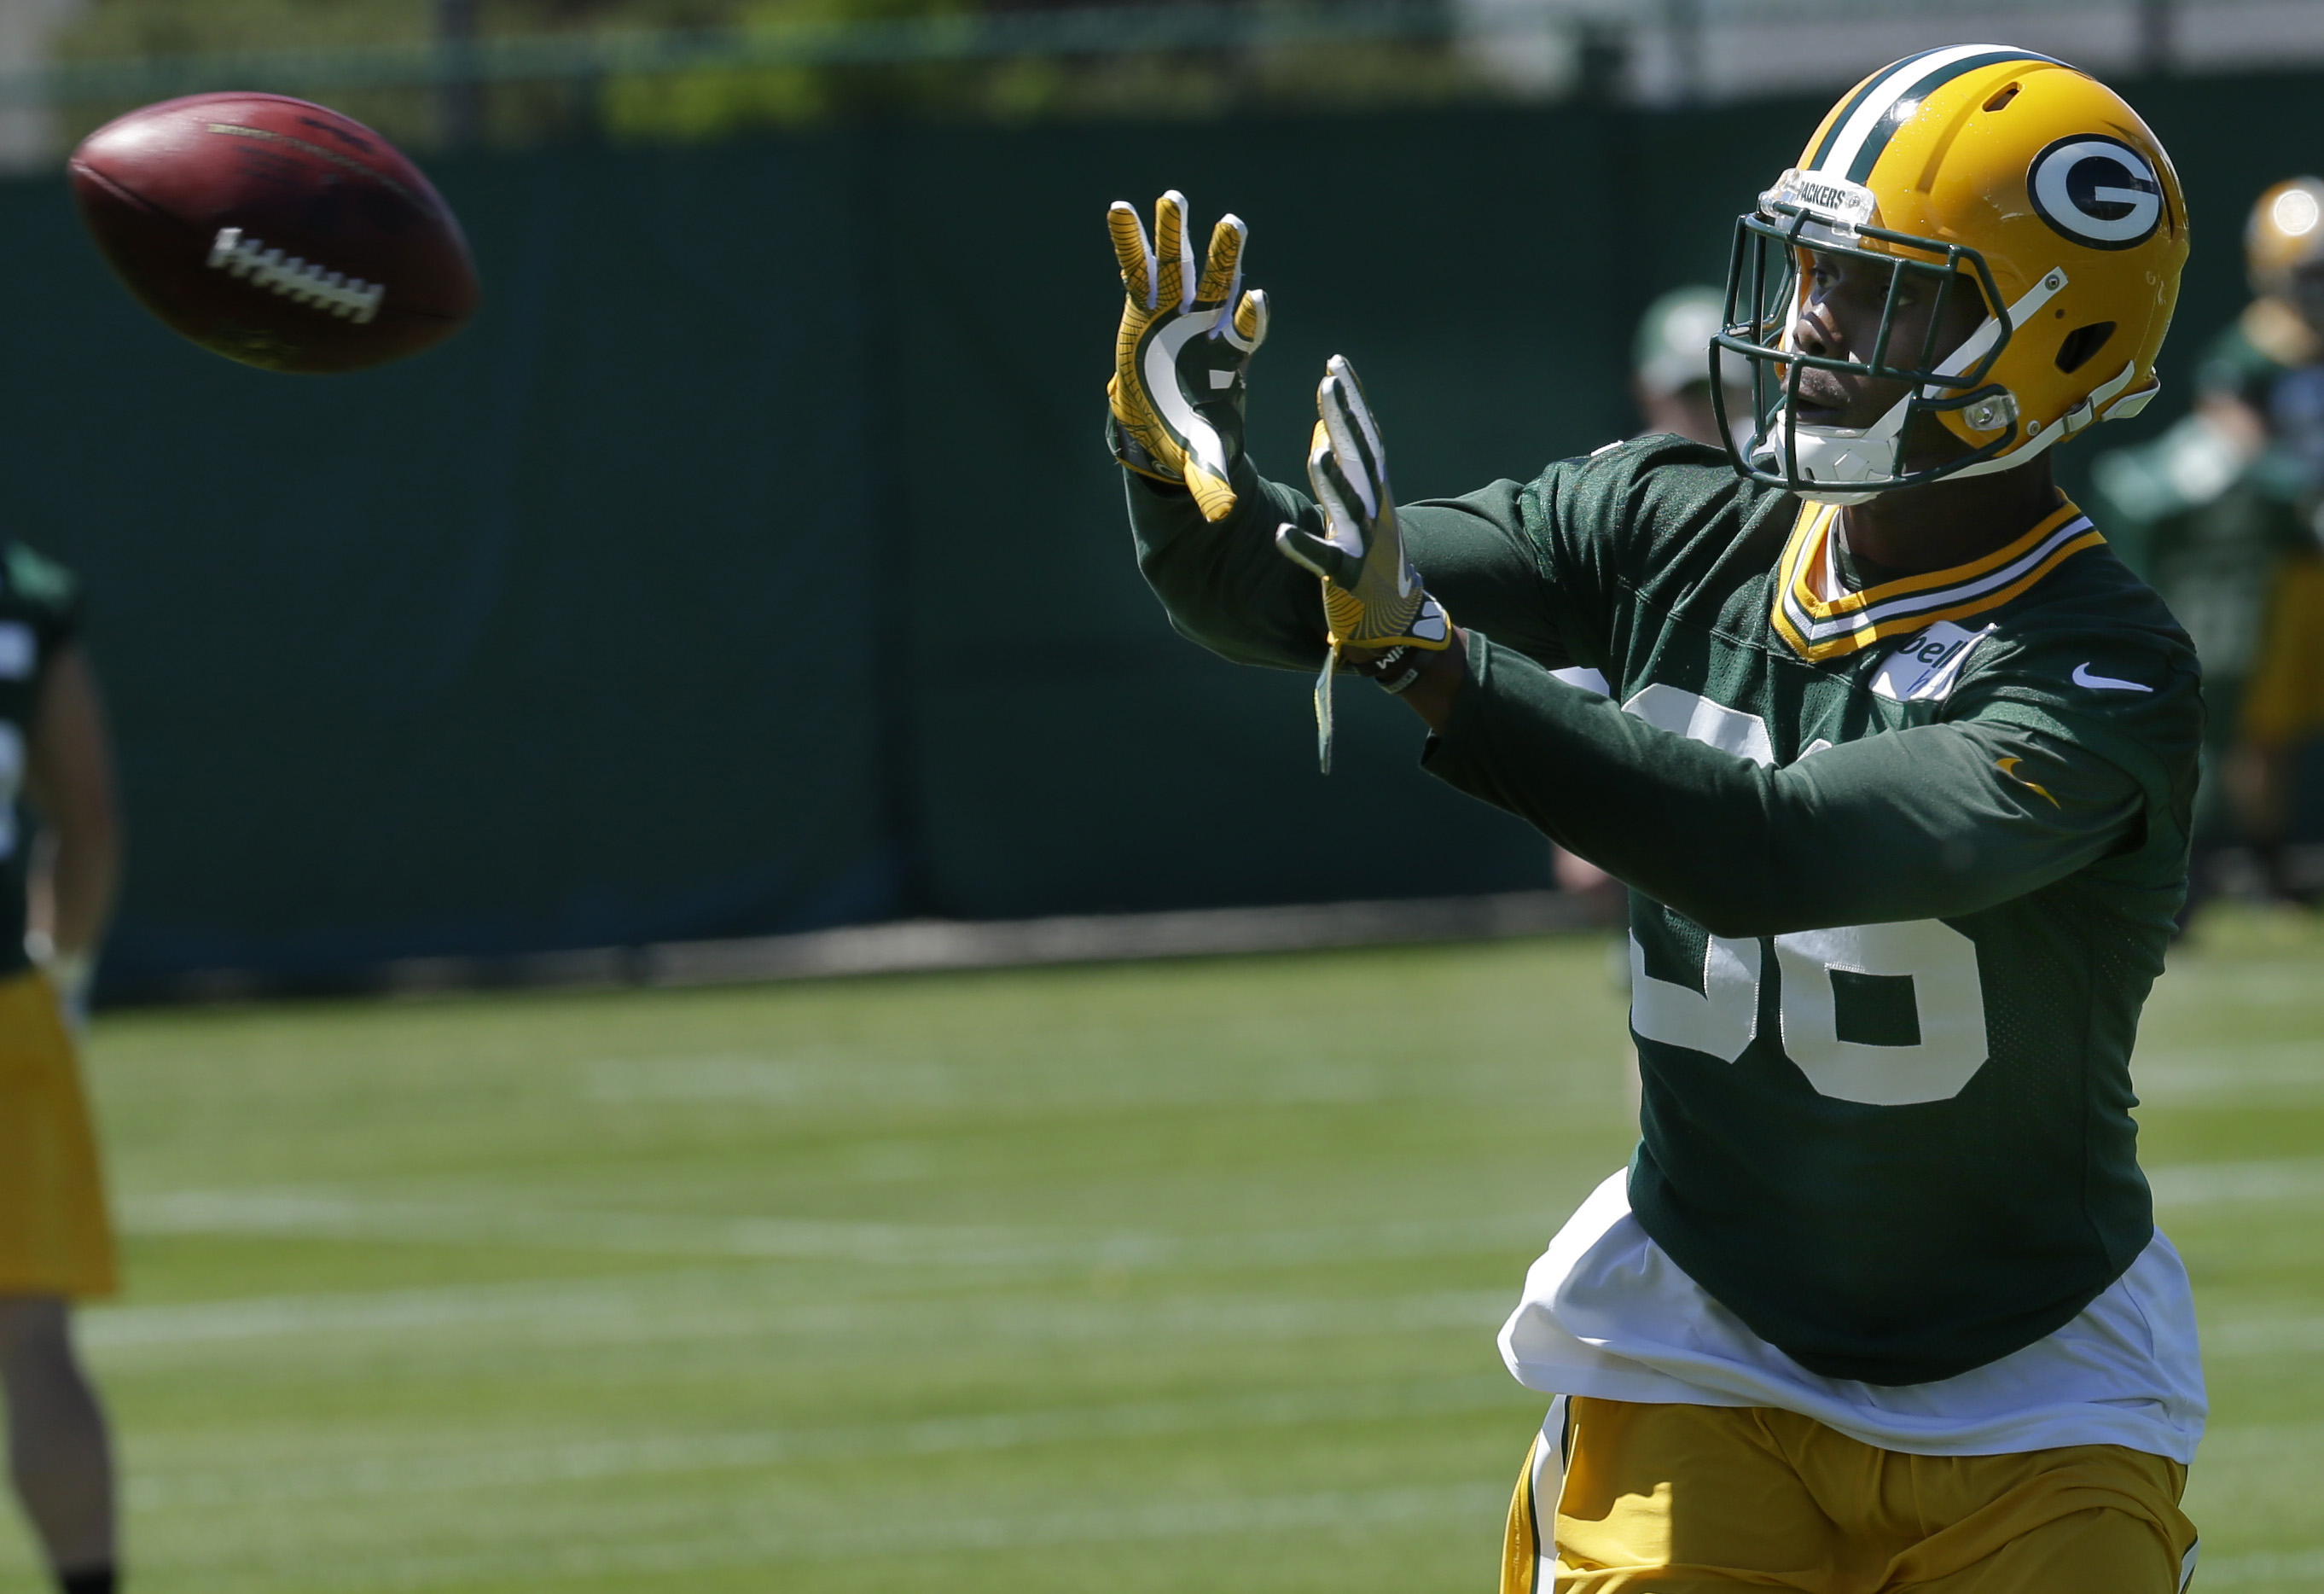 10094628-nfl-green-bay-packers-ota